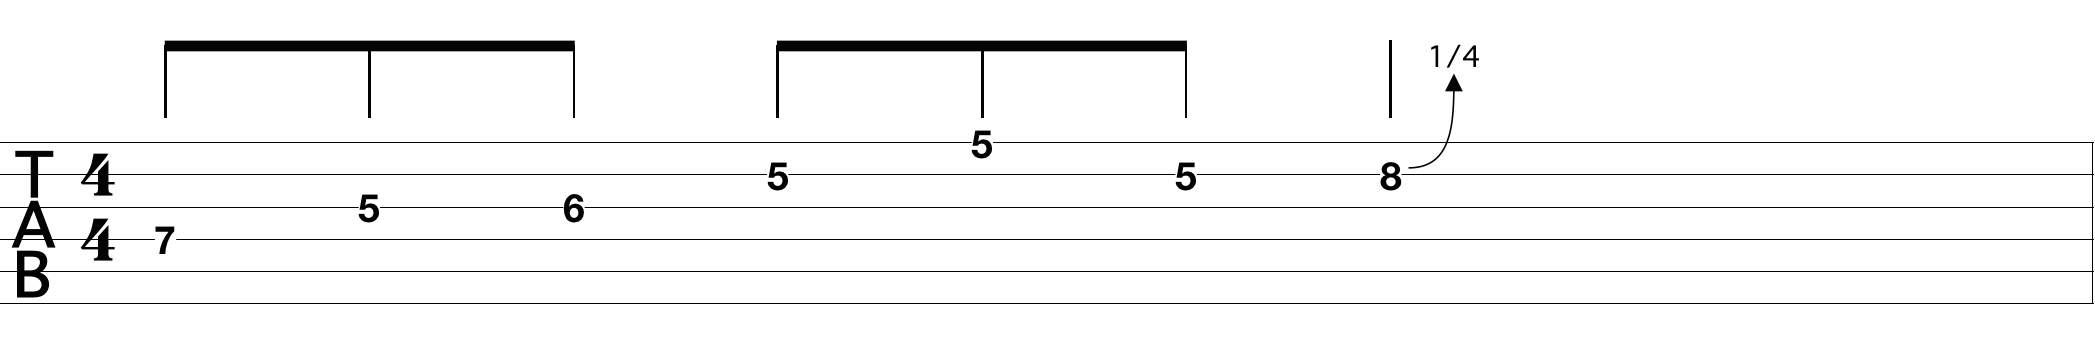 blues-tab-guitar_1.png